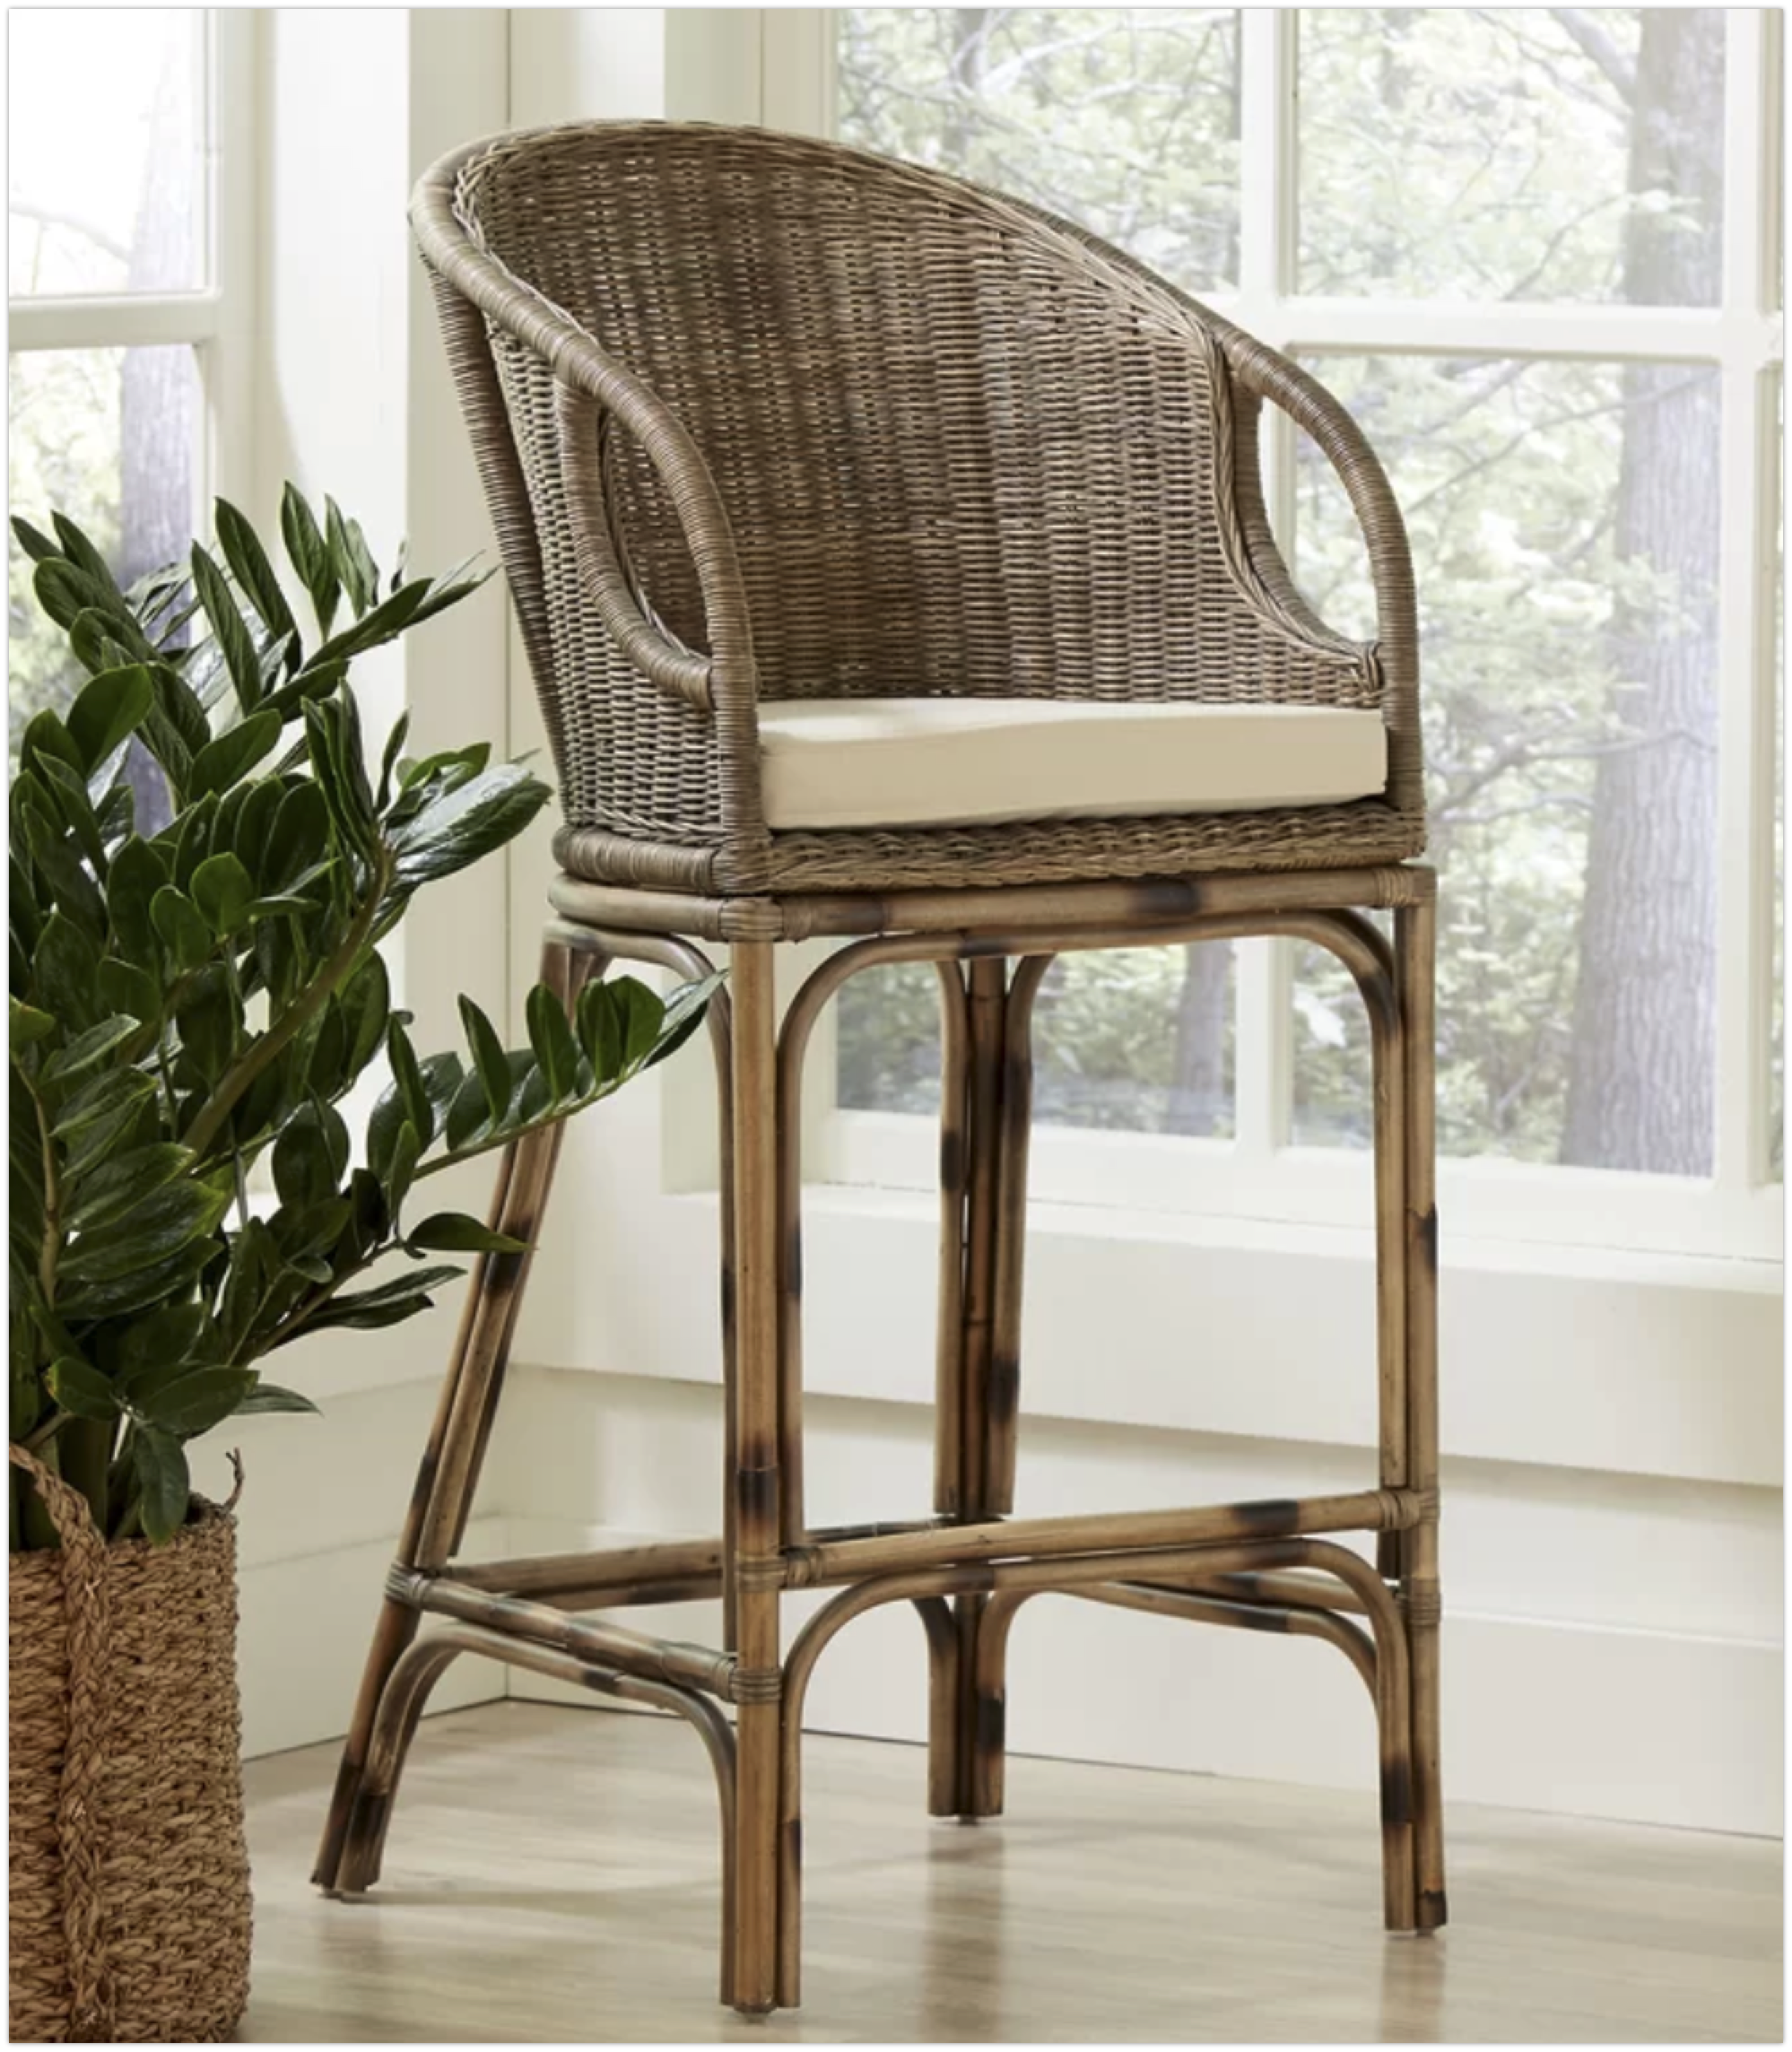 birch-lane-augustine-rattan-bar-stool